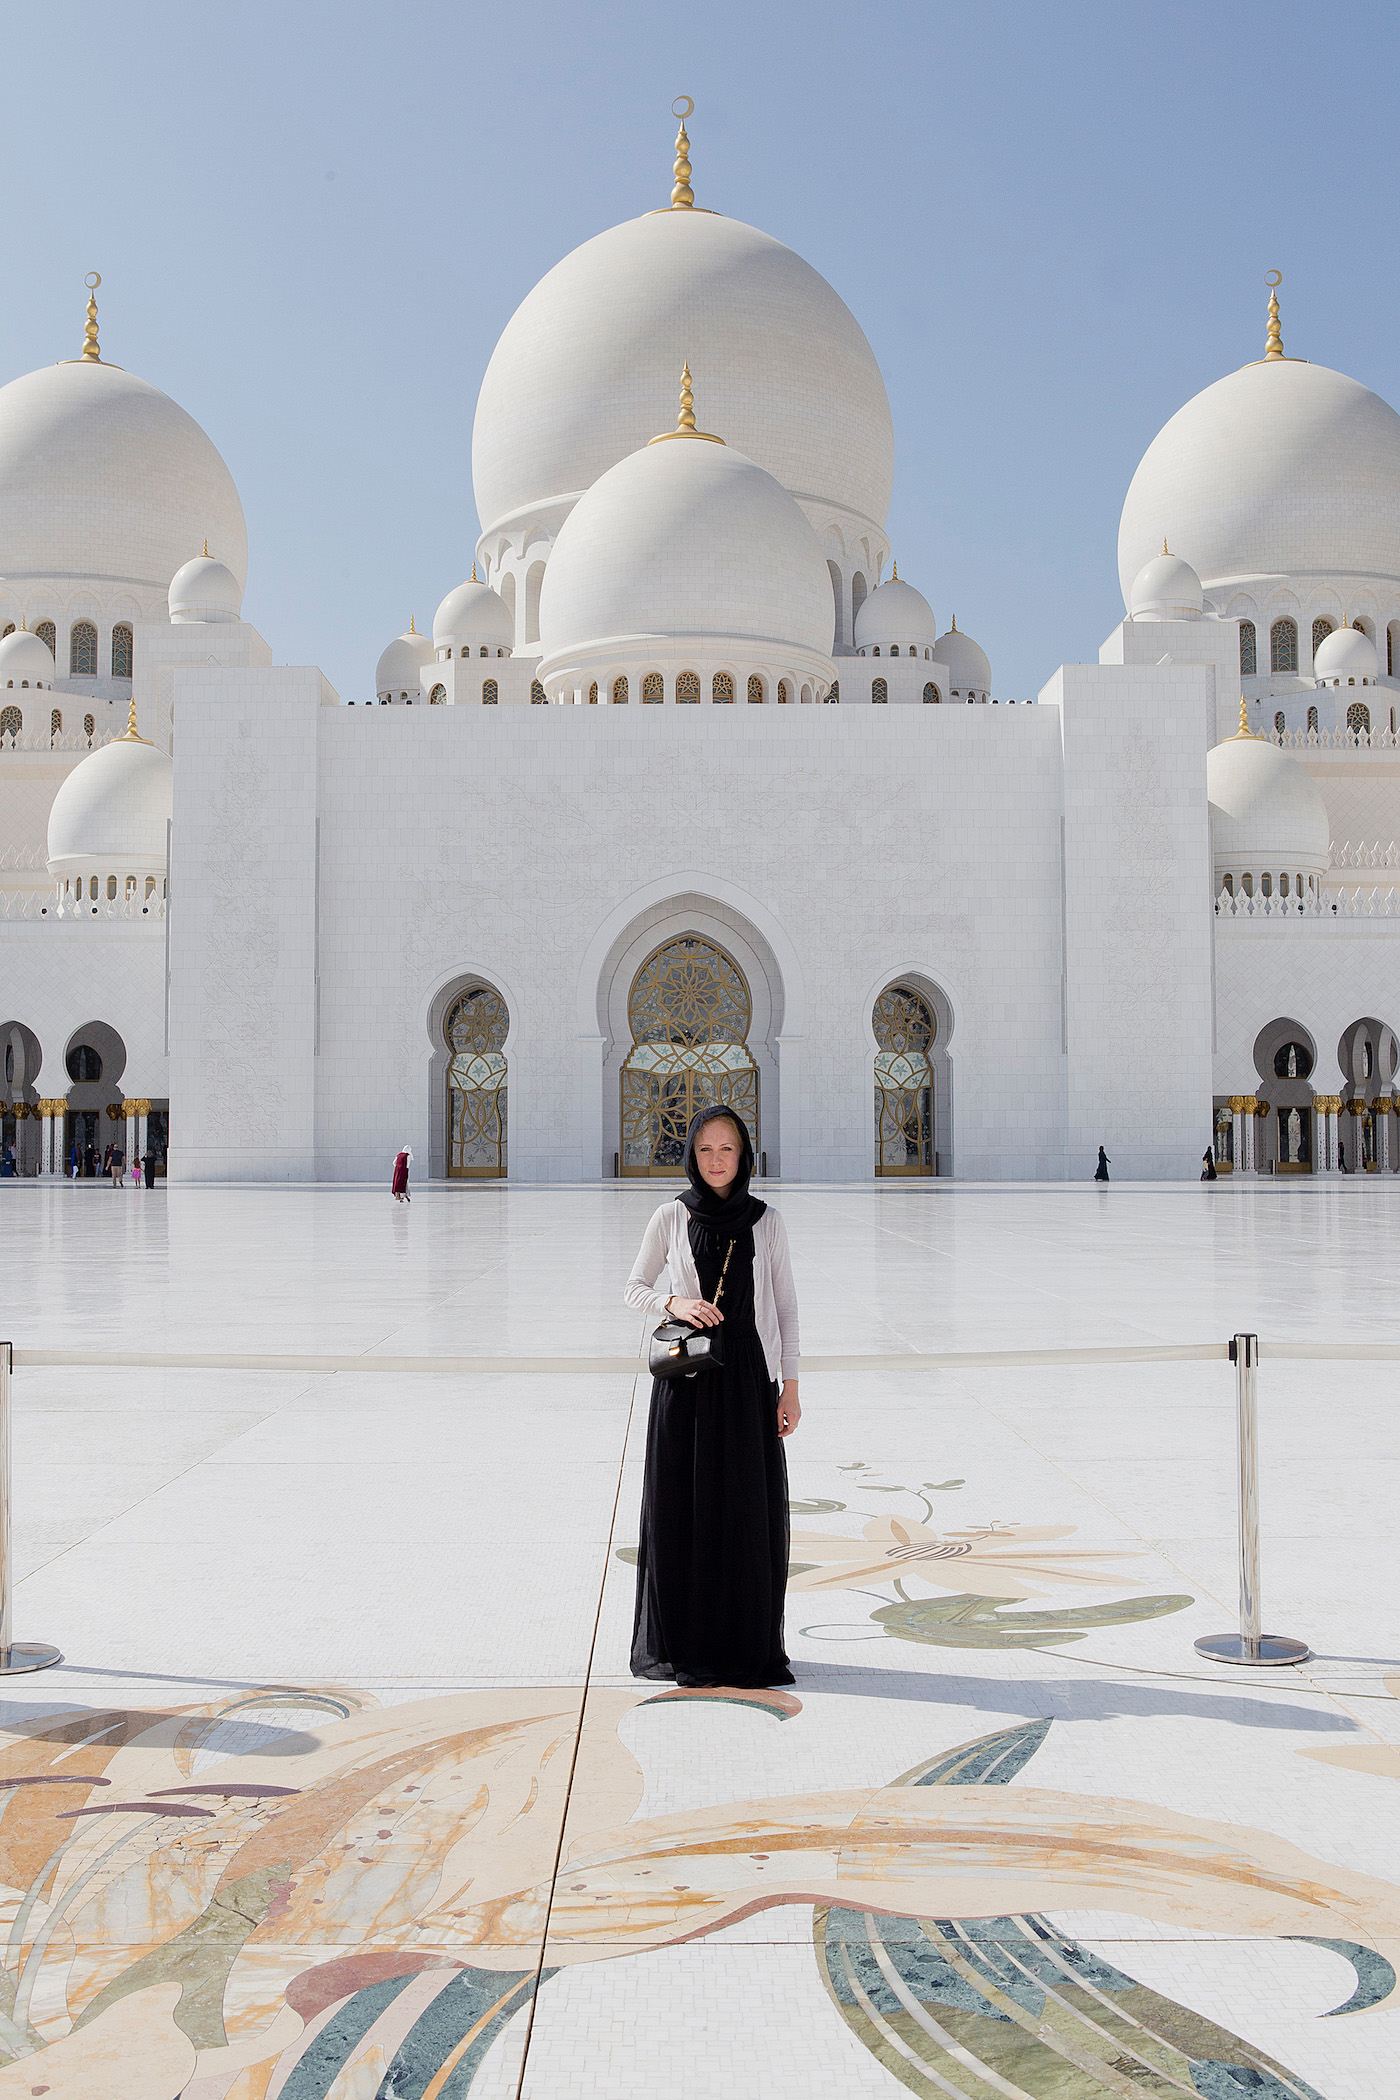 grand zayed mosque abu dhabi One week in Dubai _ Visit Abu Dhabi in one day from Dubai _ visiting Abu Dhabi from Dubai _ Abu Dhabi sightseeing